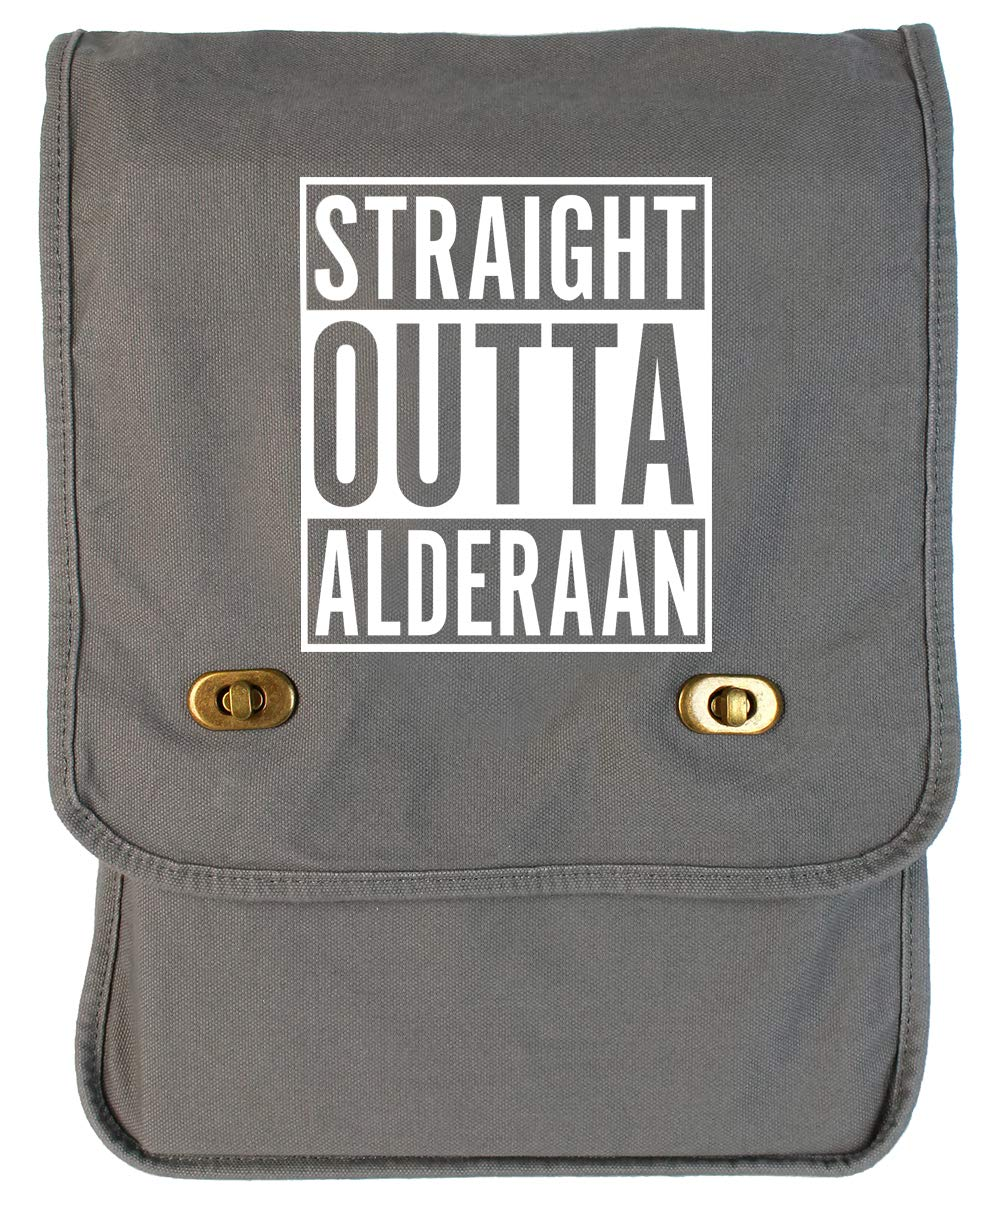 Tenacitee Straight Outta Alderaan Grey Brushed Canvas Messenger Bag